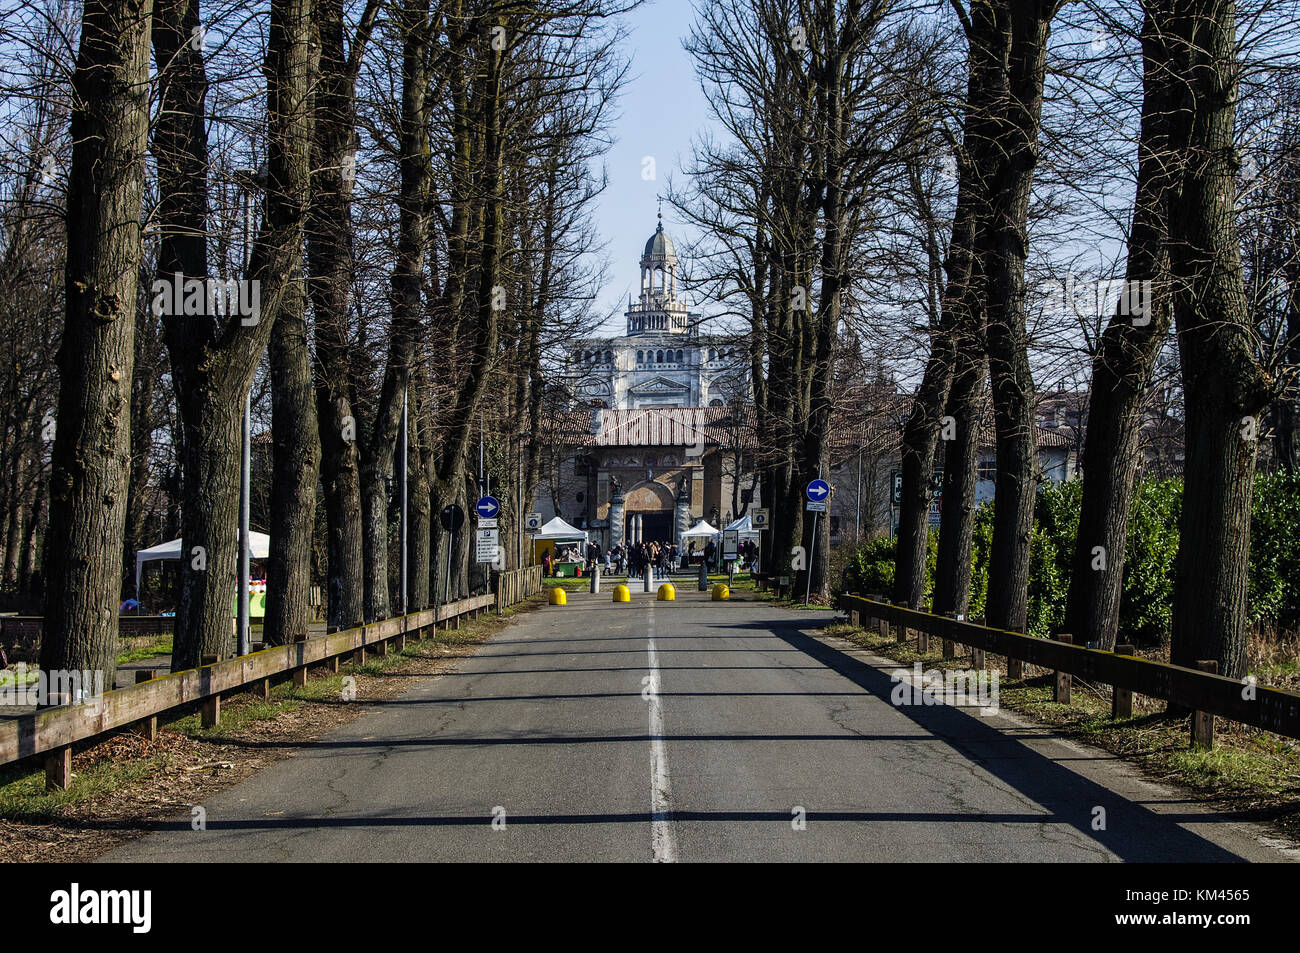 the long avenue leading to the Certosa di Pavia Stock Photo